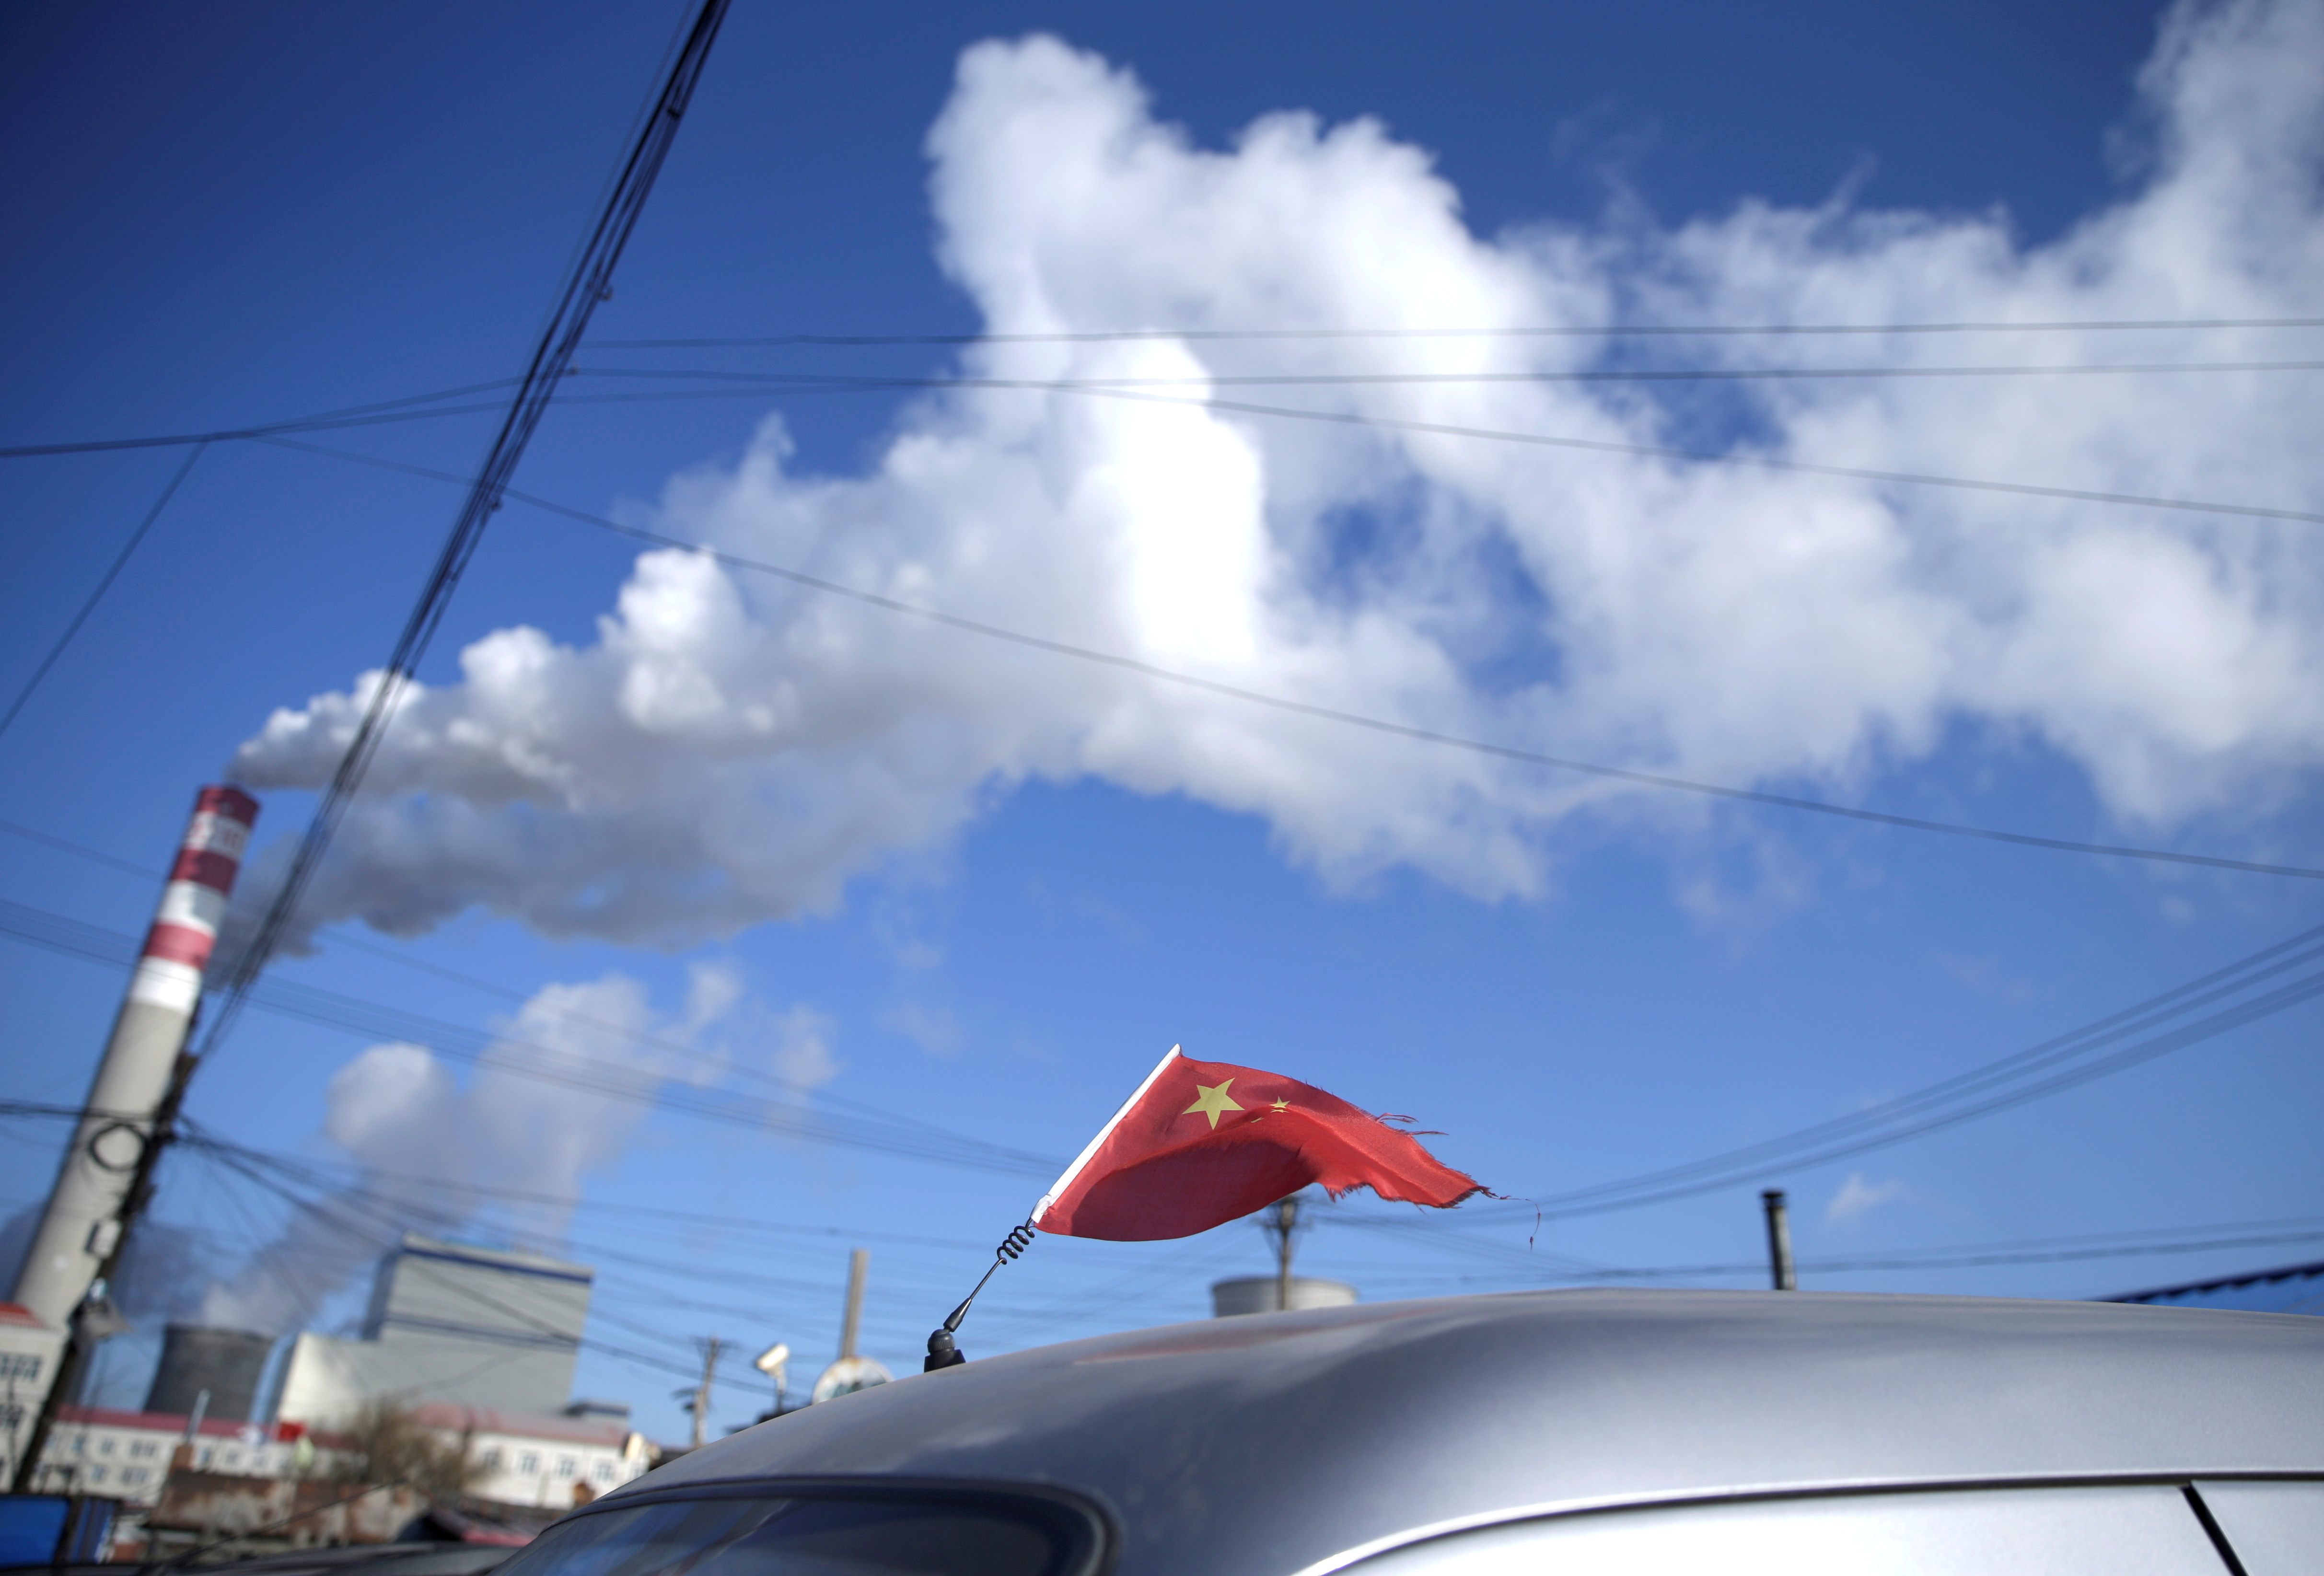 A Chinese flag is seen on the top of a car near a coal-fired power plant in Harbin, Heilongjiang province, China November 27, 2019. REUTERS/Jason Lee/File Photo